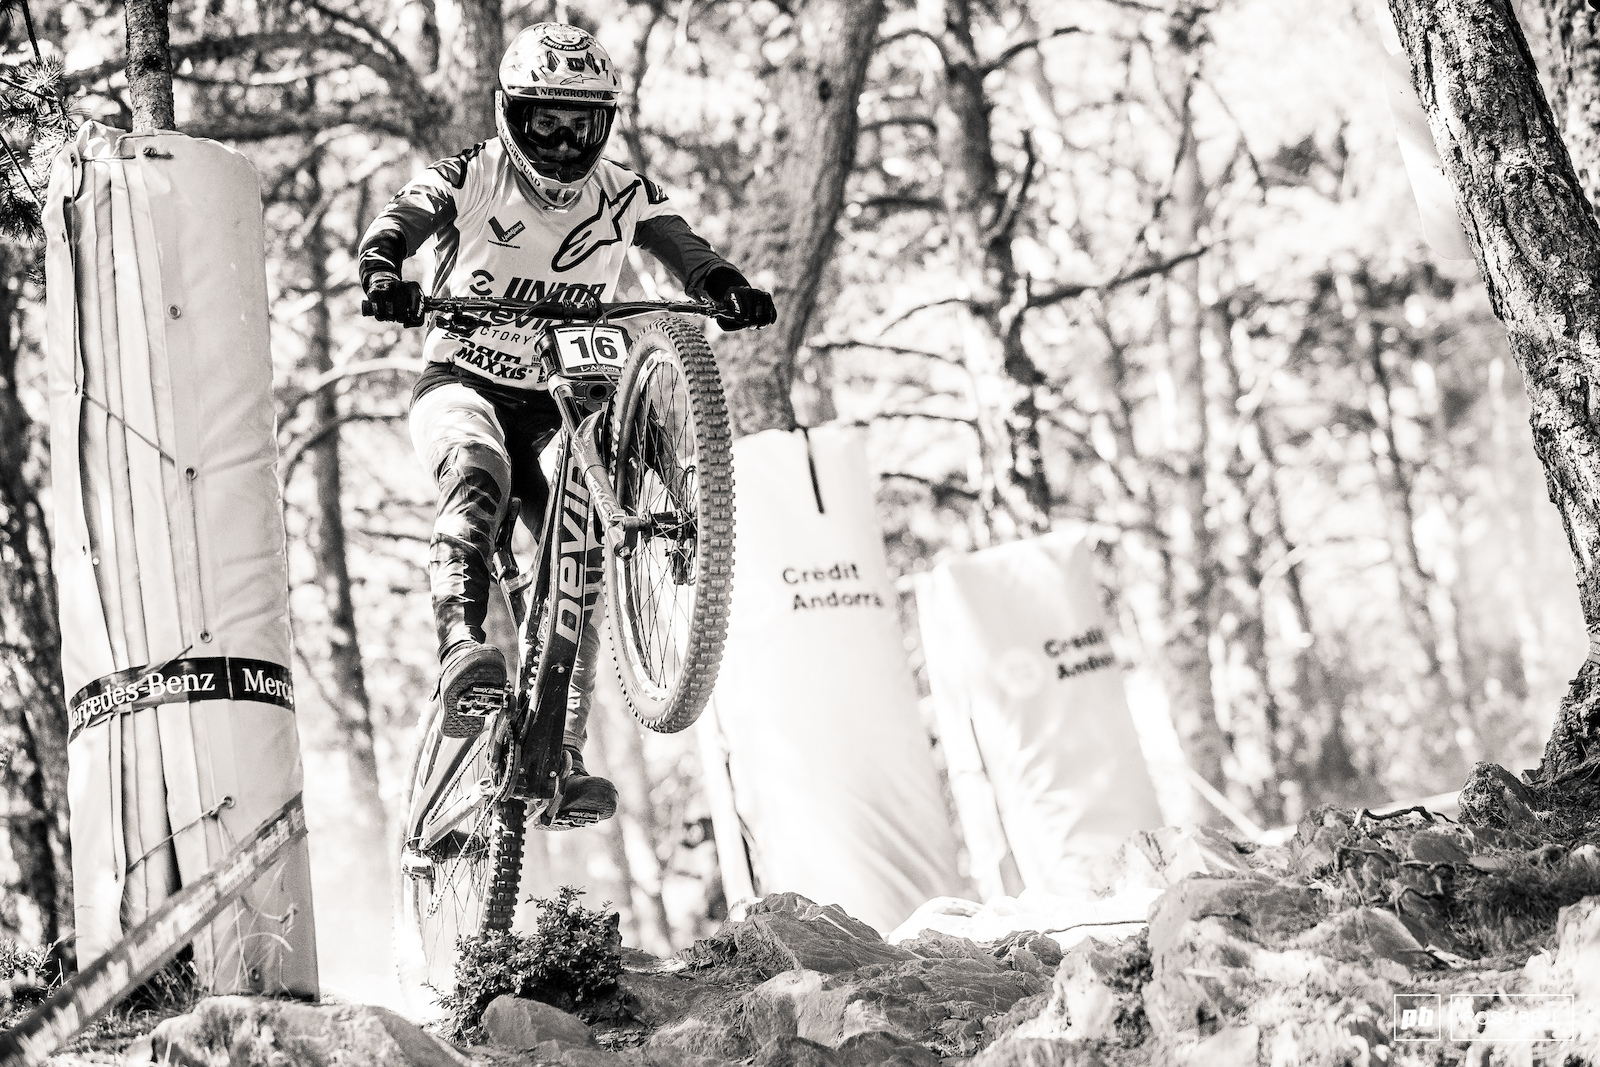 Dakotah Norton gapping out of the rock garden where riders have been puzzling over line choice all weekend.